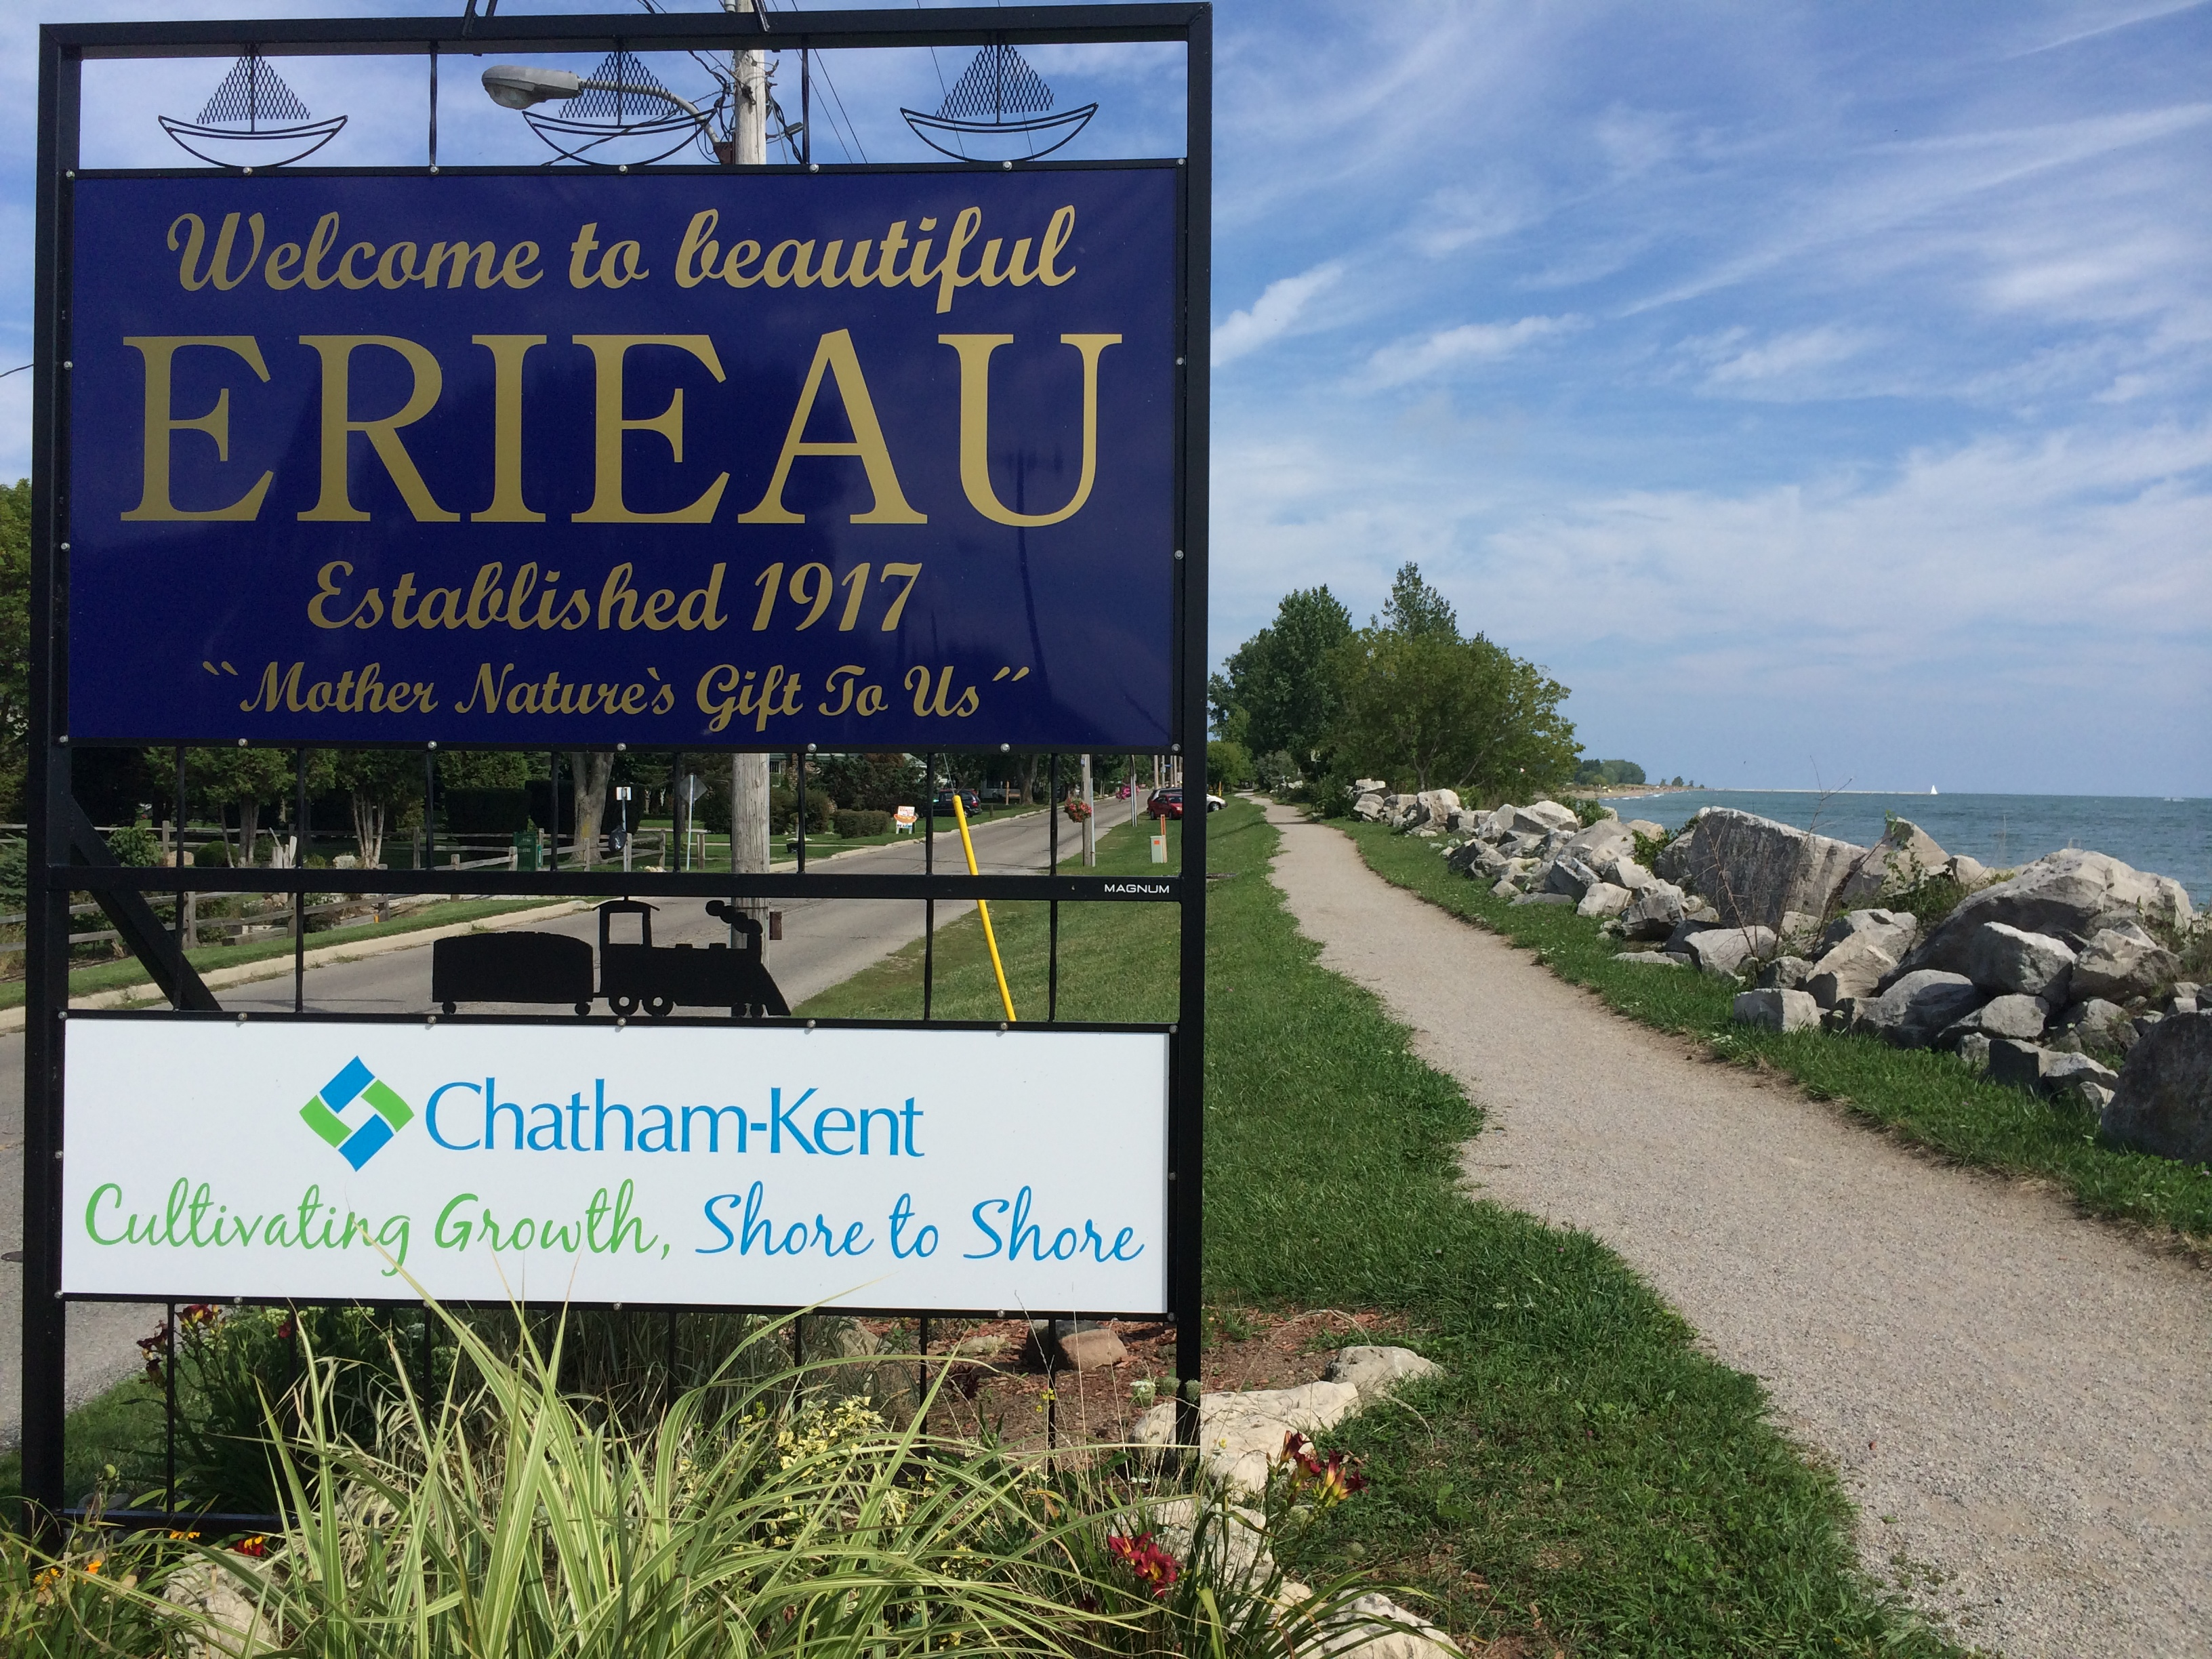 The Erieau welcoming sign is seen in this photo on August 24, 2014. (Photo by Ricardo Veneza)